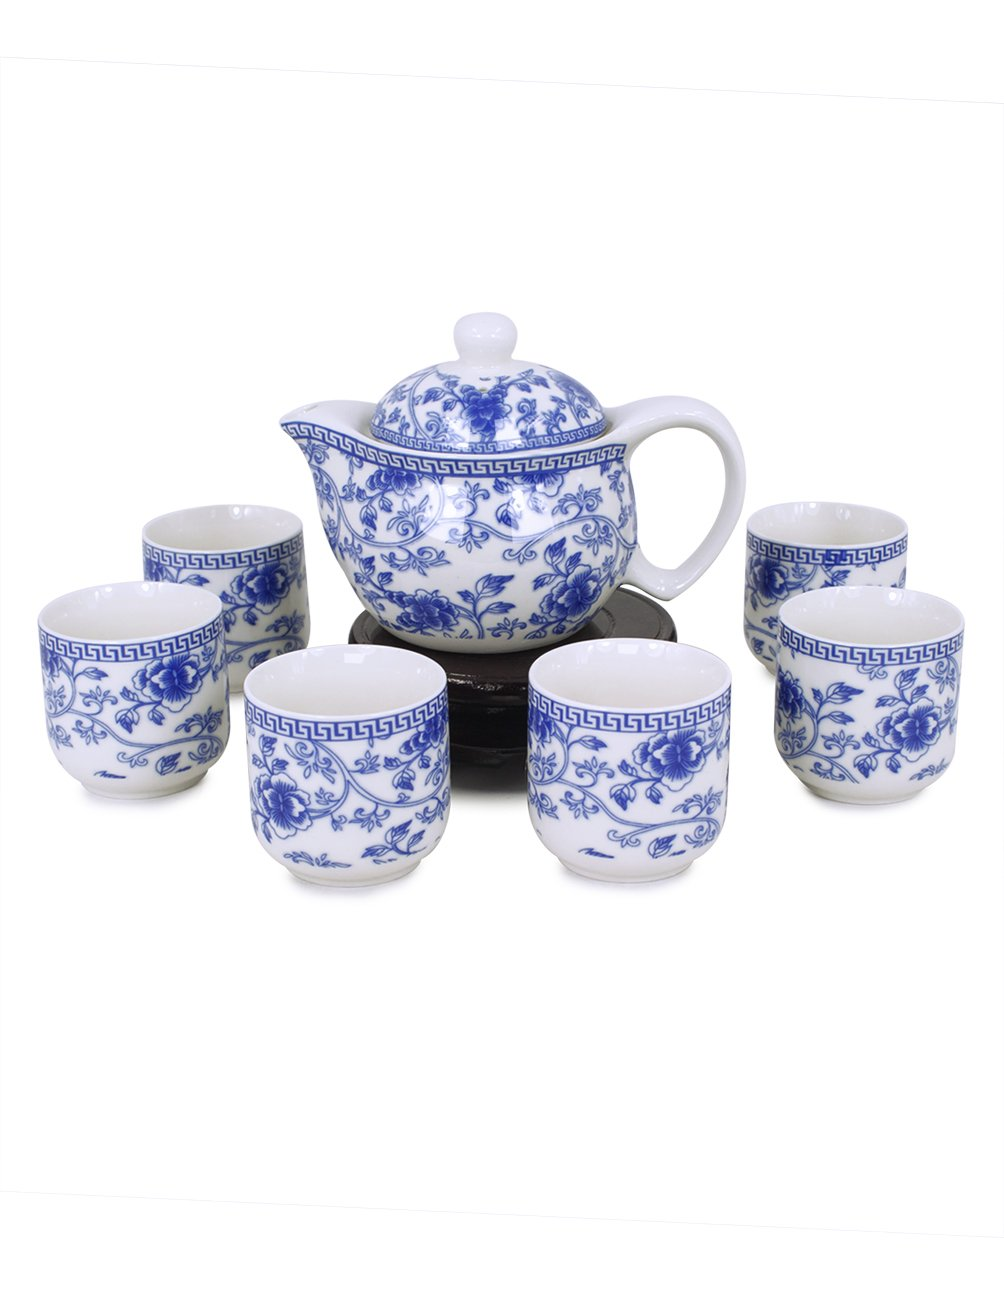 Dahlia Porcelain Vine Flower Tea Set (Tea Pot w. Infuser + 6 Tea Cups) in Gift Box